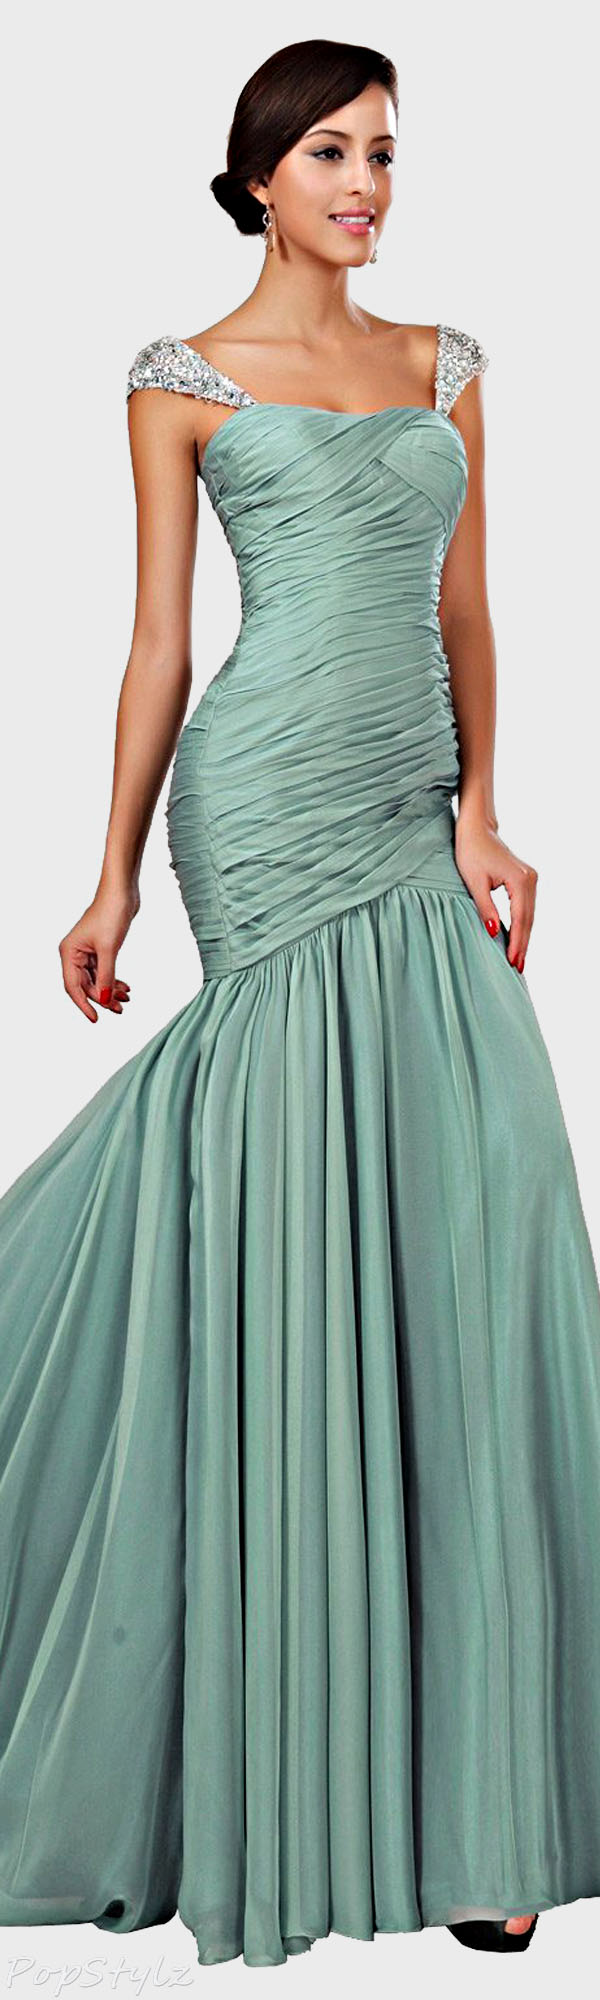 eDressit Beaded Cap Sleeve Gown